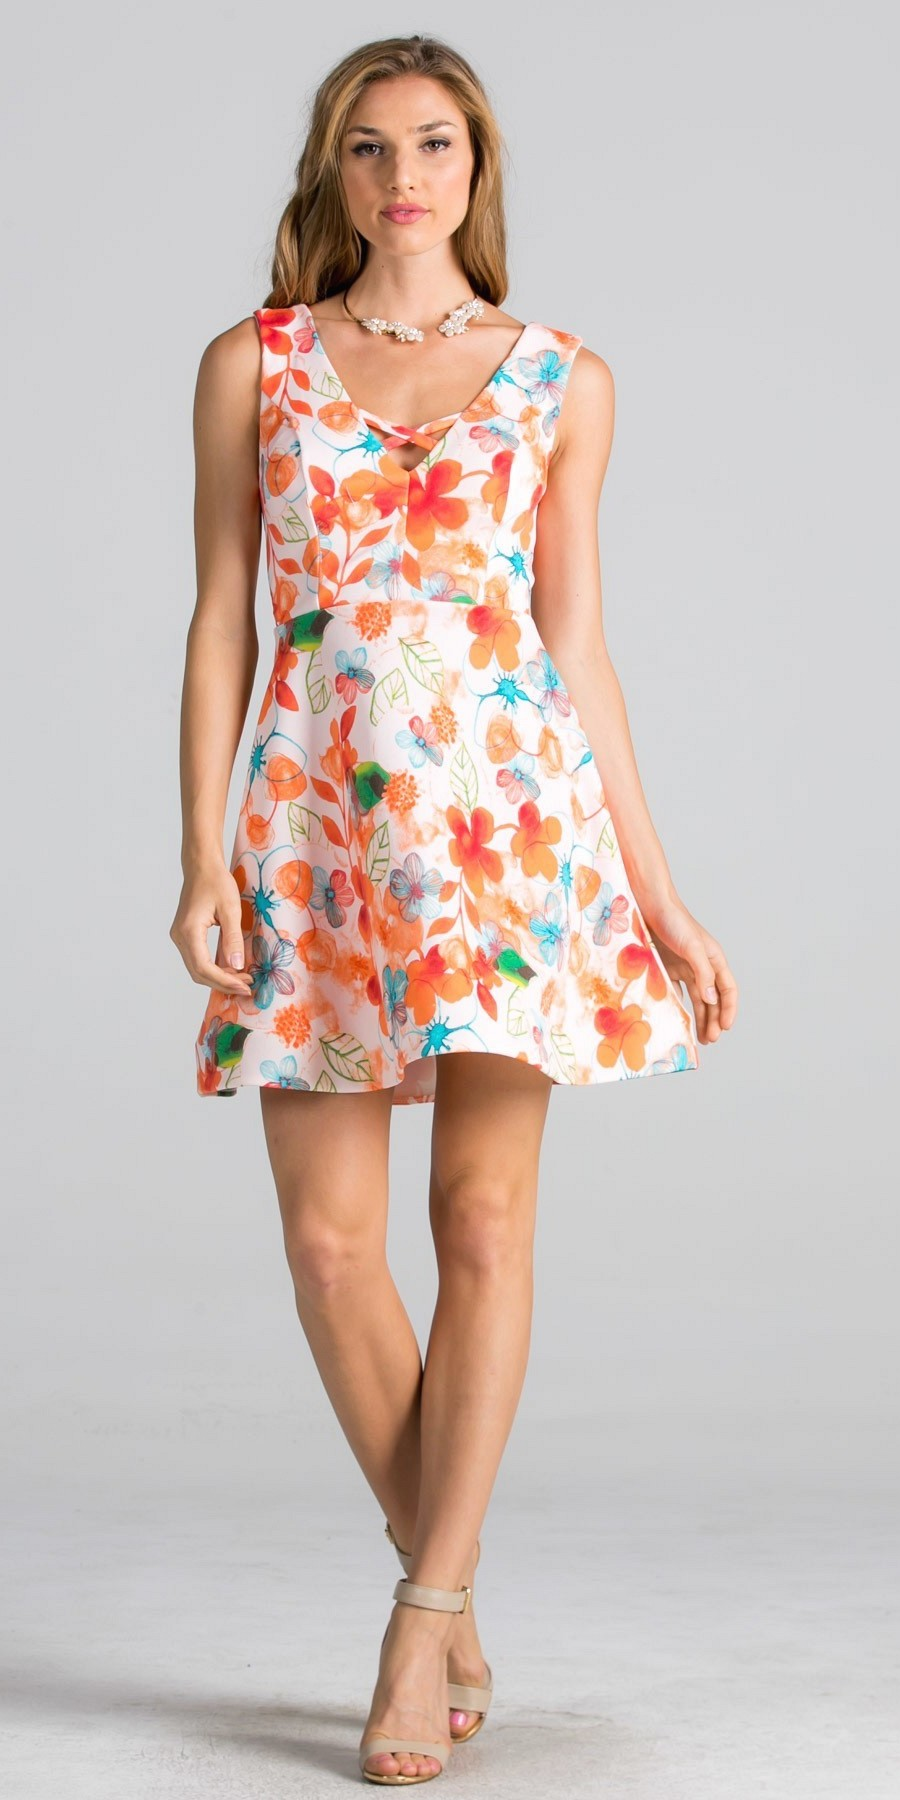 Rent Metallic Floral Cocktail Dress by Marchesa Notte for $ - $ only at Rent the Runway.8/